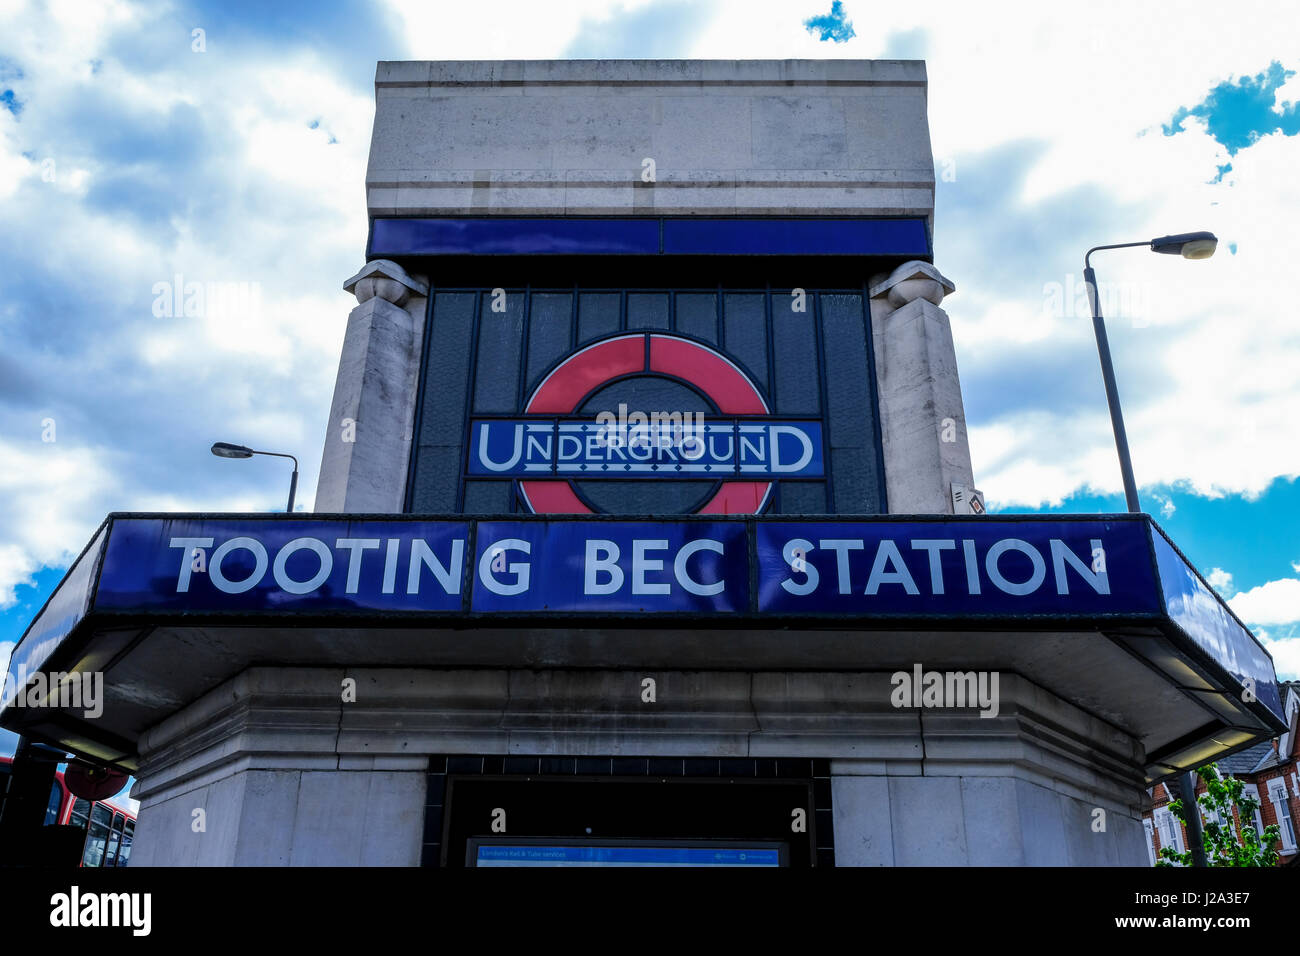 Tooting Bec station - Stock Image